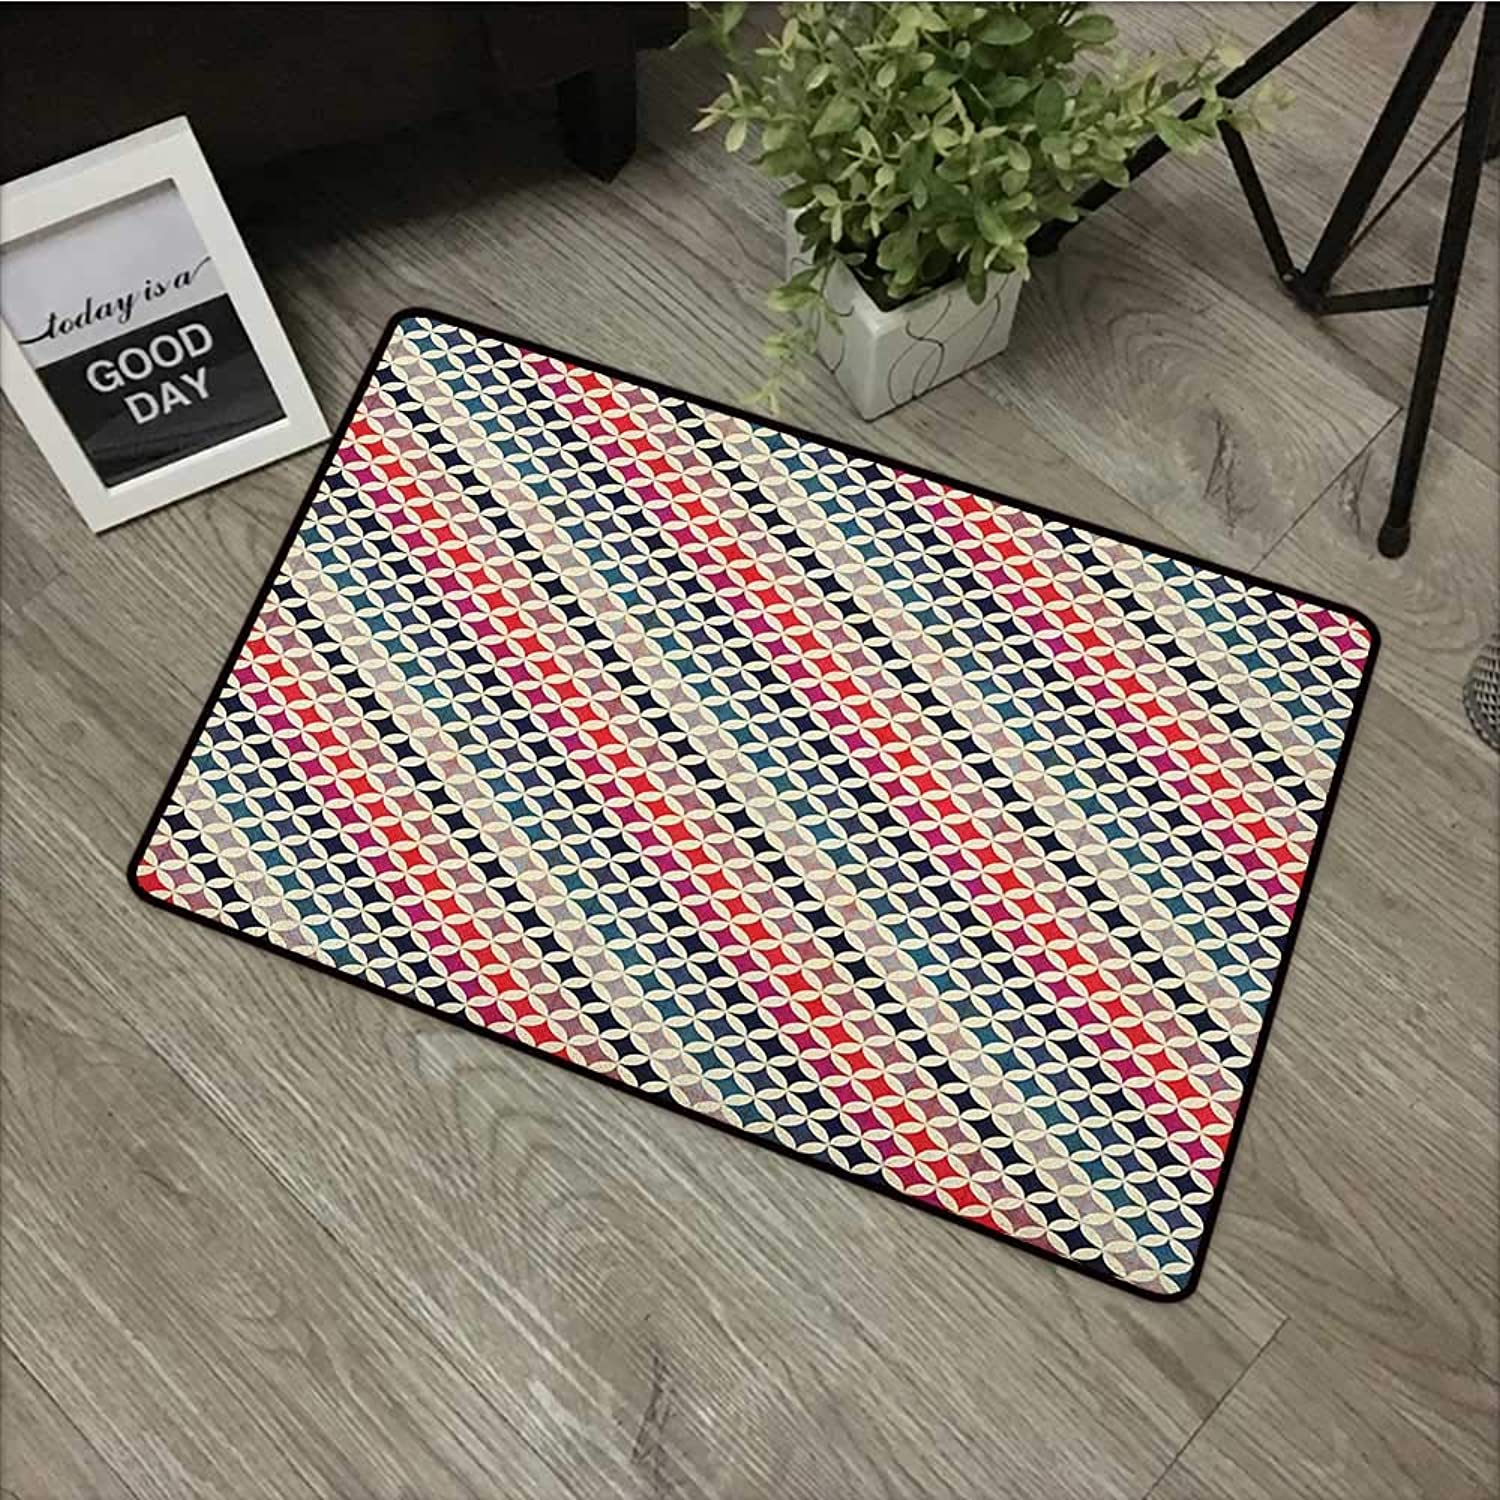 Printed Door mat W35 x L59 INCH colorful,Interlocking Grid Motif Pattern with colorful Diagonal Stripes Vibrant Background, Multicolor Non-Slip, with Non-Slip Backing,Non-Slip Door Mat Carpet